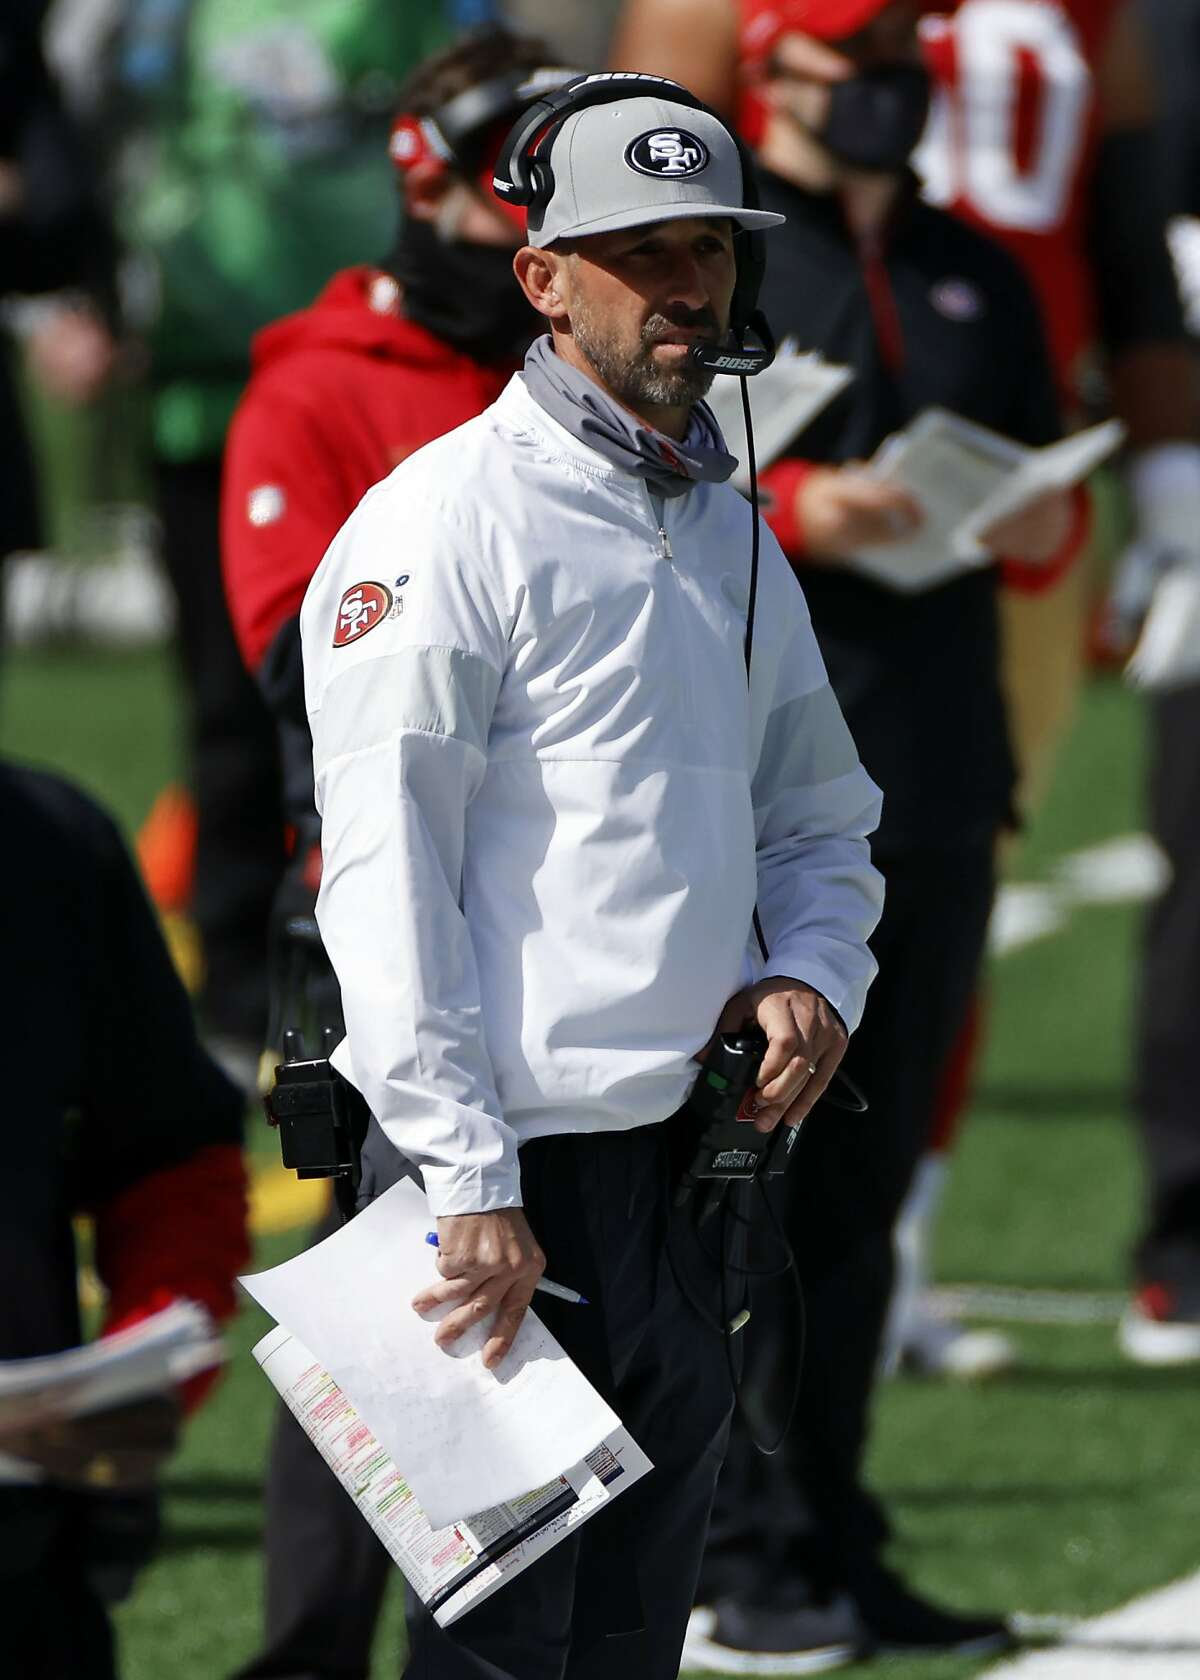 San Francisco 49ers head coach Kyle Shanahan looks on against the New York Jets during an NFL football game, Sunday, Sept. 20, 2020, in East Rutherford, N.J. (AP Photo/Adam Hunger)